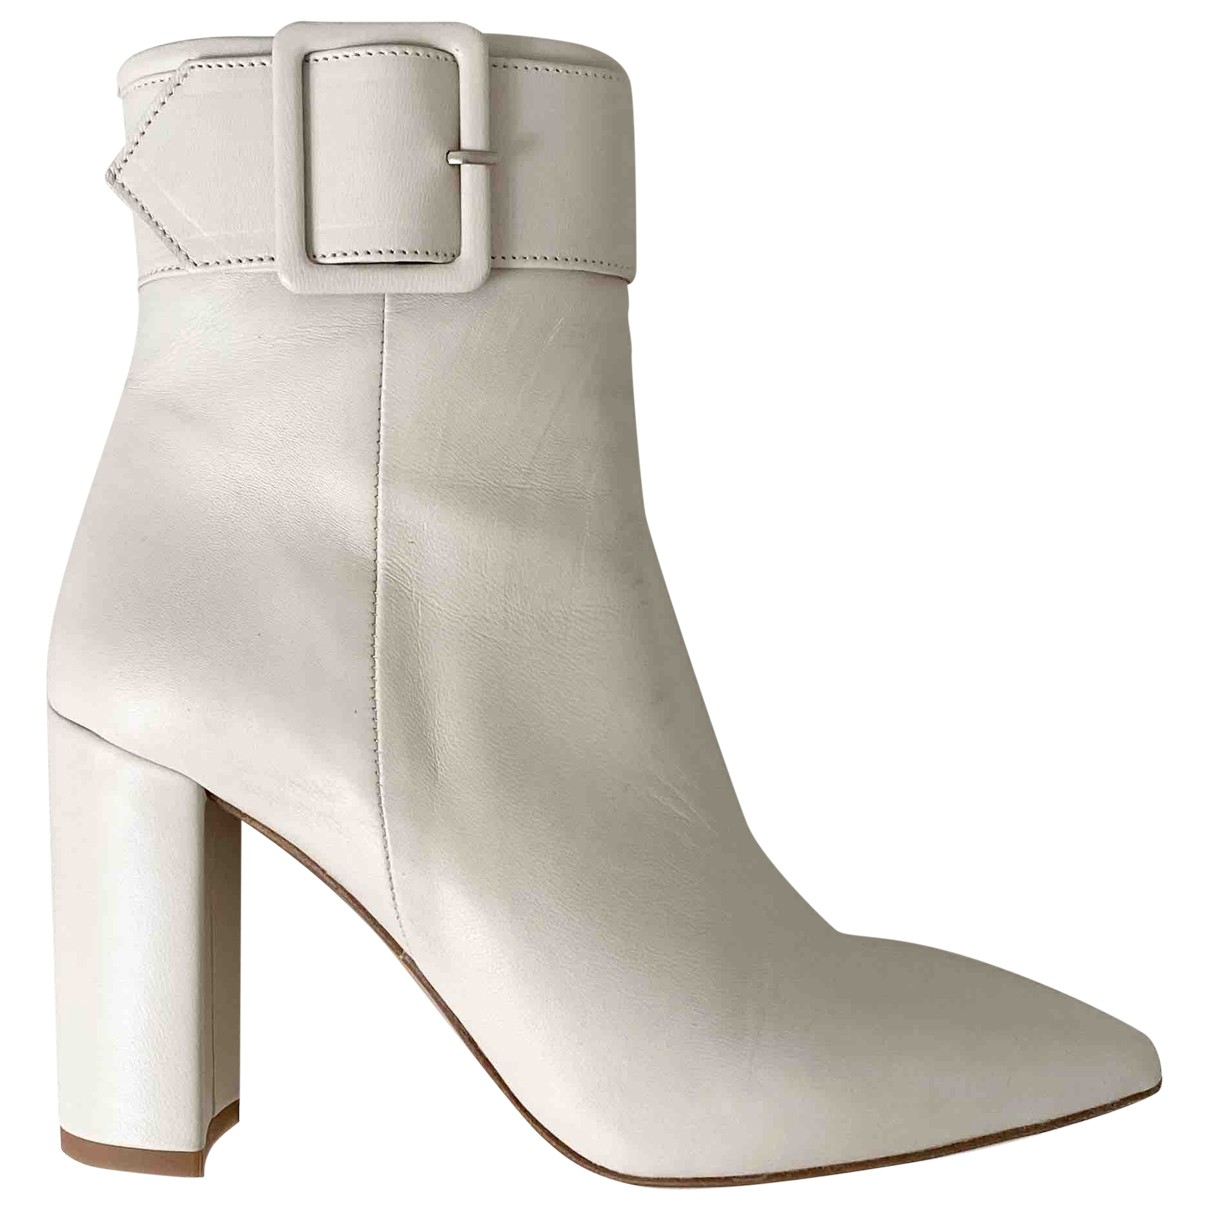 The Kooples \N Ecru Leather Ankle boots for Women 37 EU